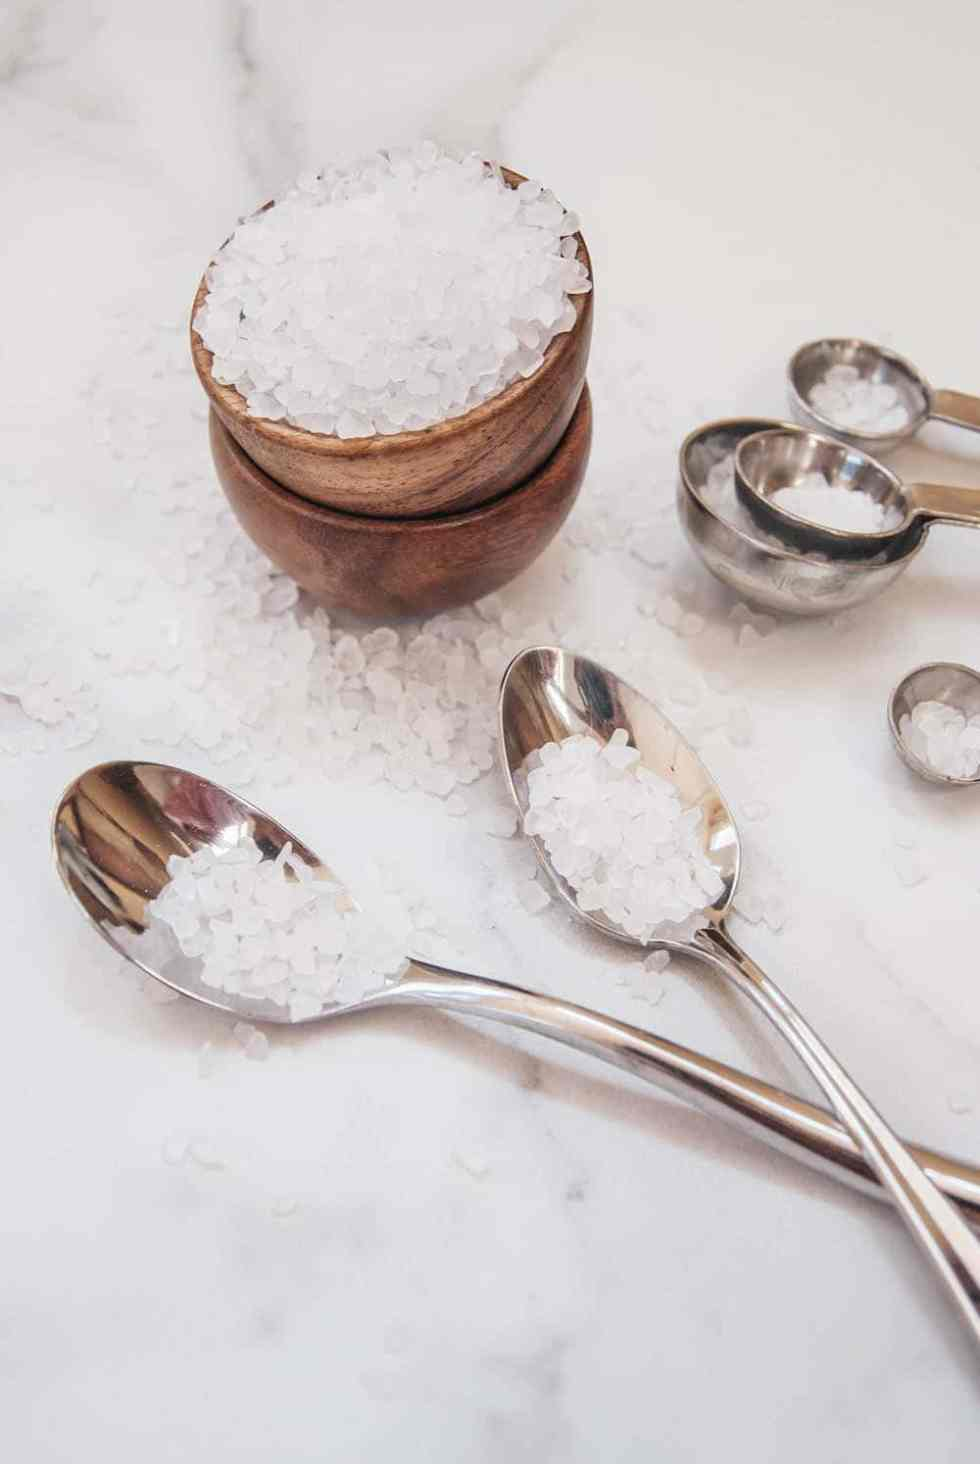 Wellness Bites: New Sodium Research